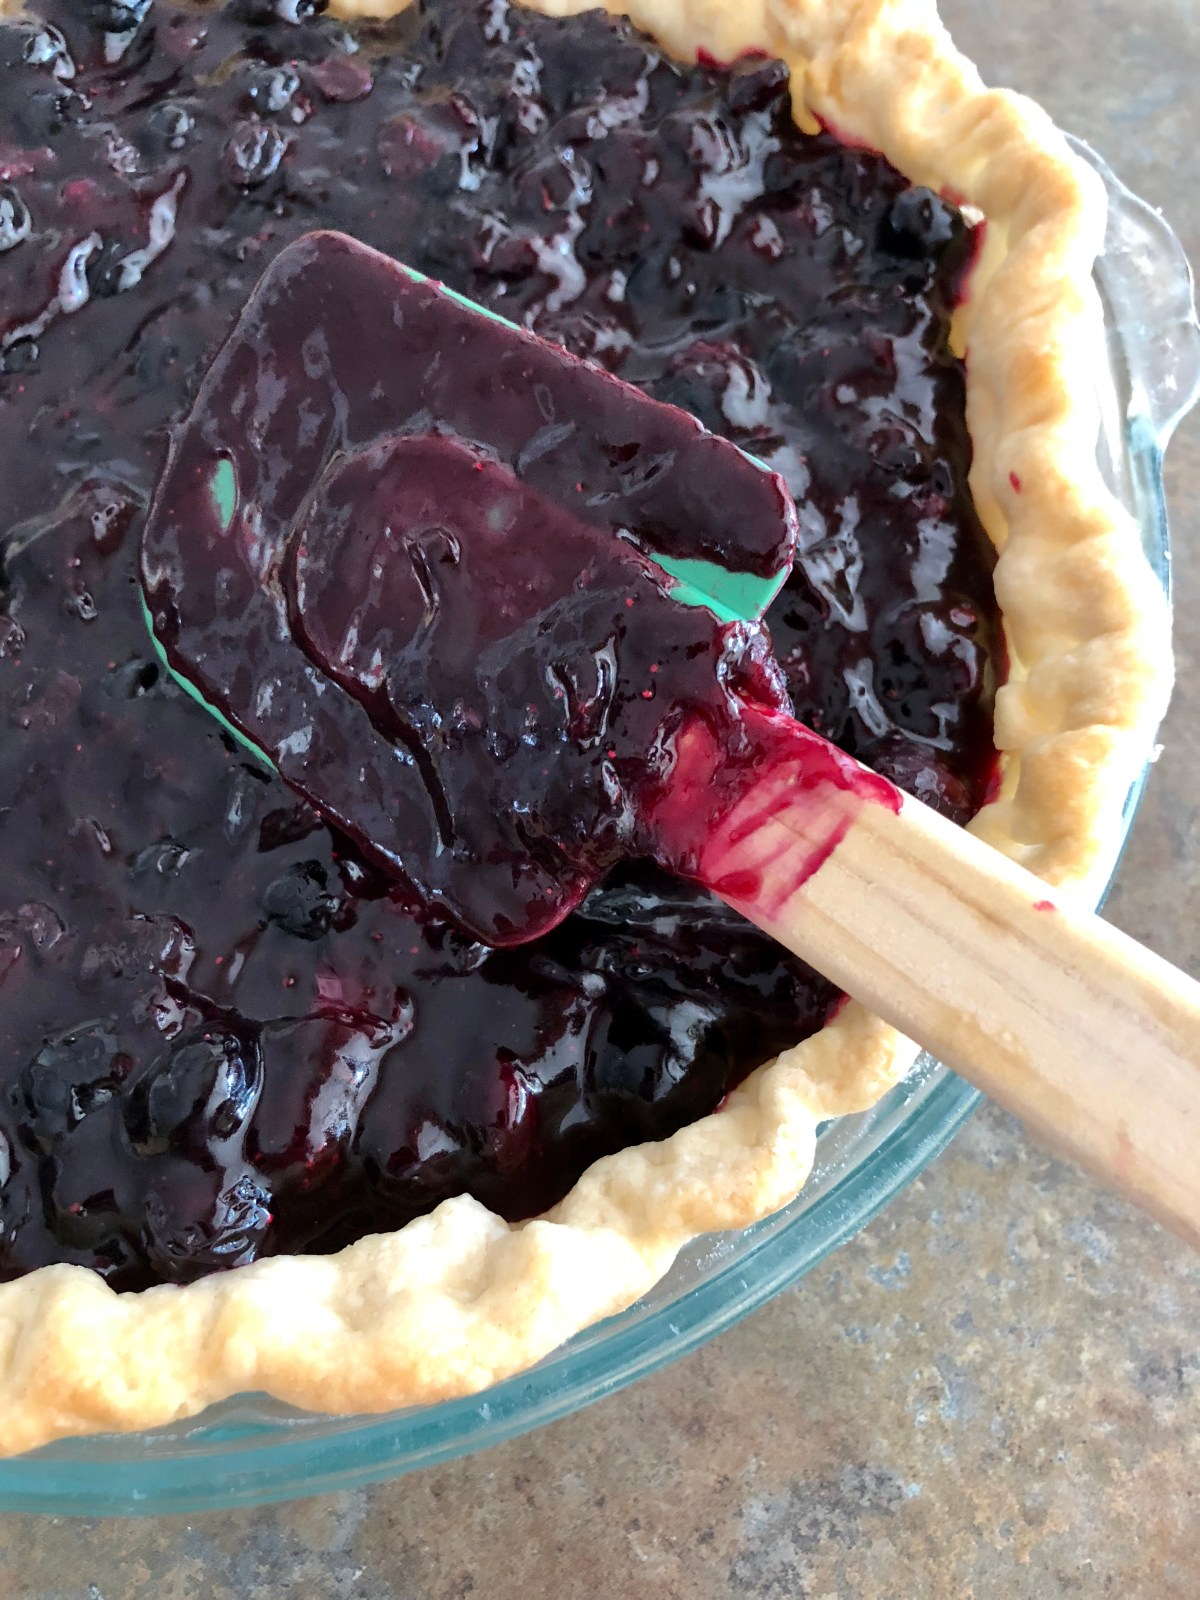 Fresh Blueberry Pie by Happylifeblogspot@yahoo.com #blueberrypie #freshblueberrypie #dessert #pie #summerdessert